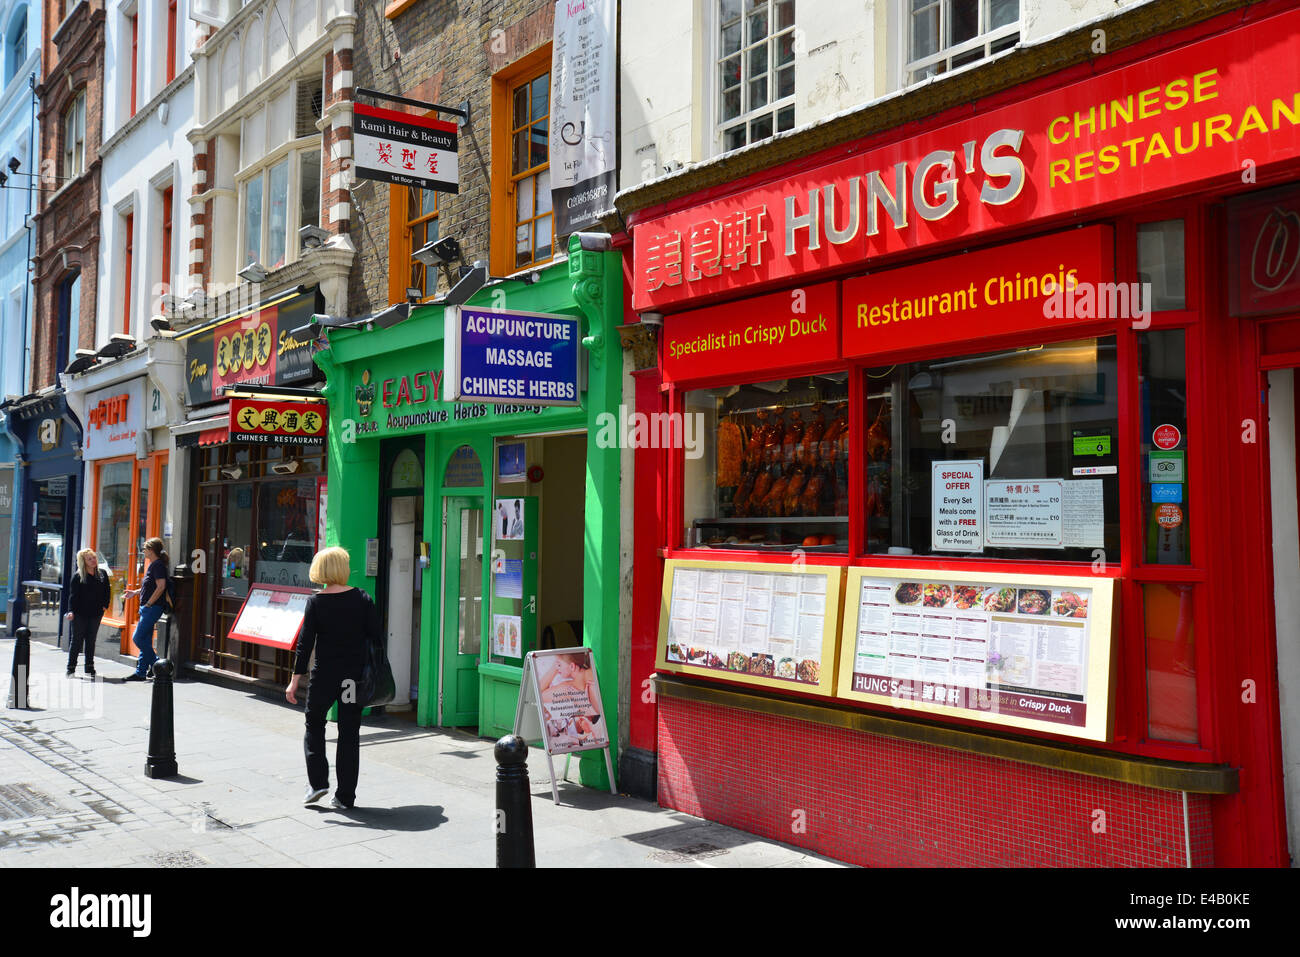 Chinese restaurants on Wardour Street, Chinatown, West End, City of Westminster, London, England, United Kingdom - Stock Image